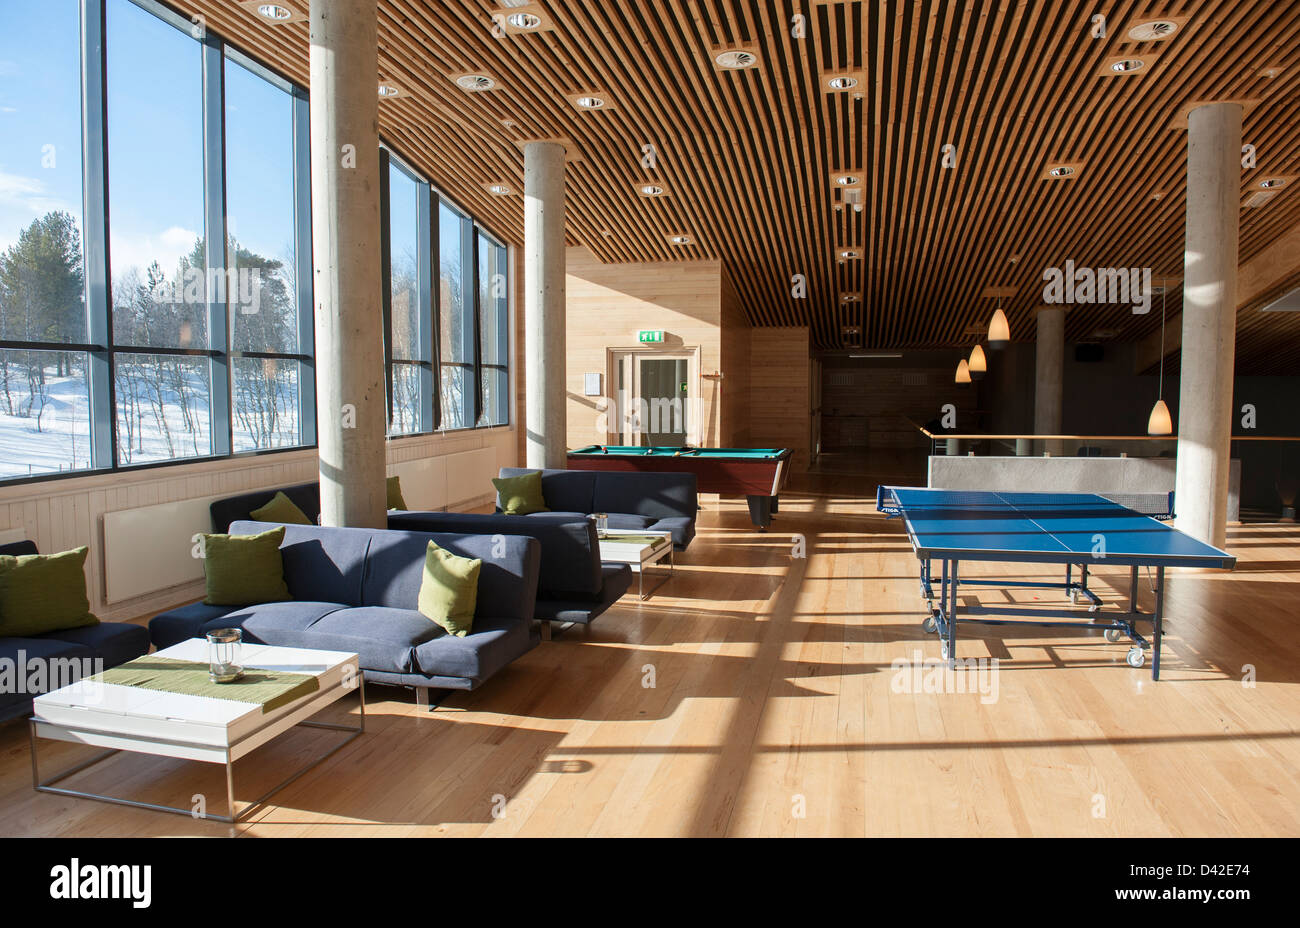 Premier étage avec billard, tennis de table et le salon à l'Geilo Kulturkyrkje en Geilo, Norvège, Photo Stock